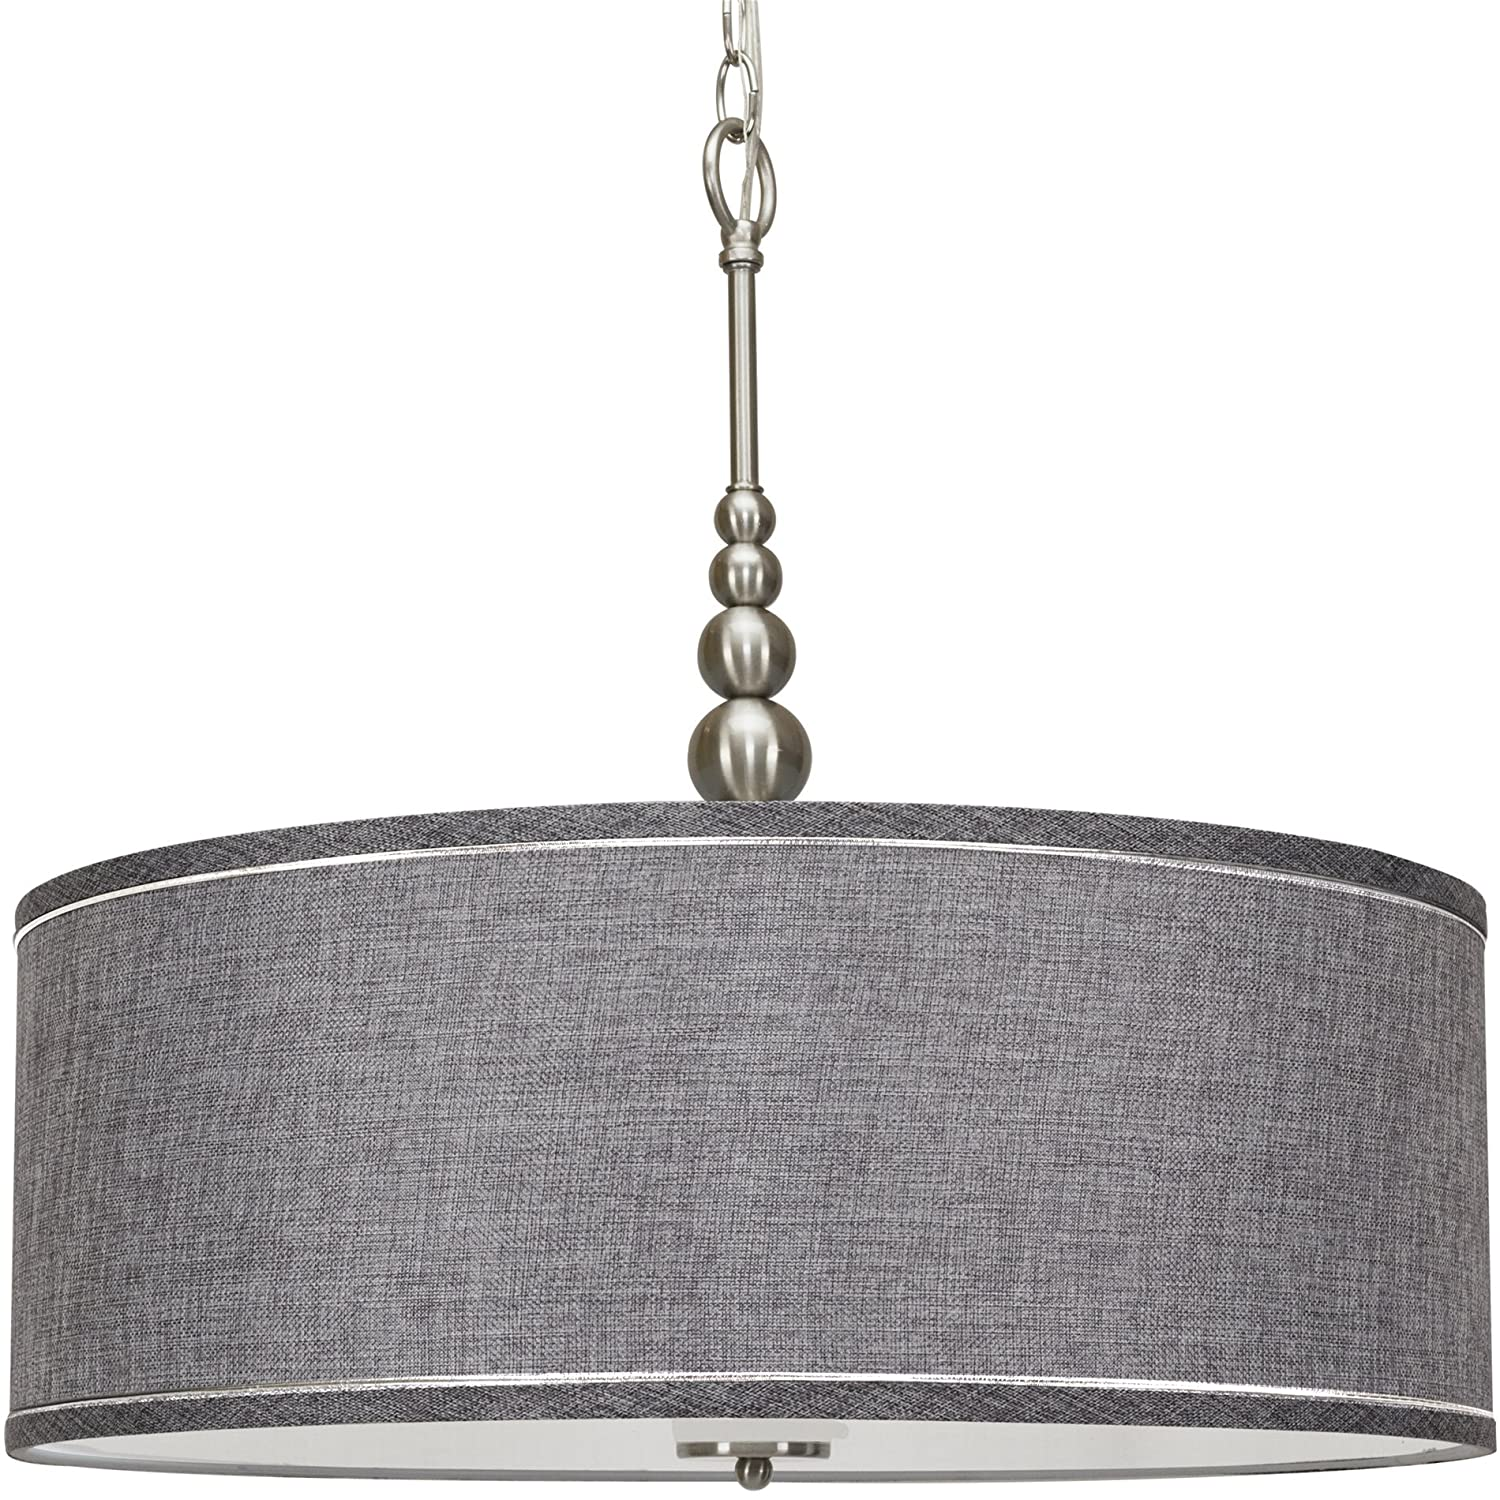 "Kira Home Adelade 22"" 3-Light Modern Chandelier, Gray Fabric Drum Shade & Glass Diffuser, Brushed Nickel Finish"